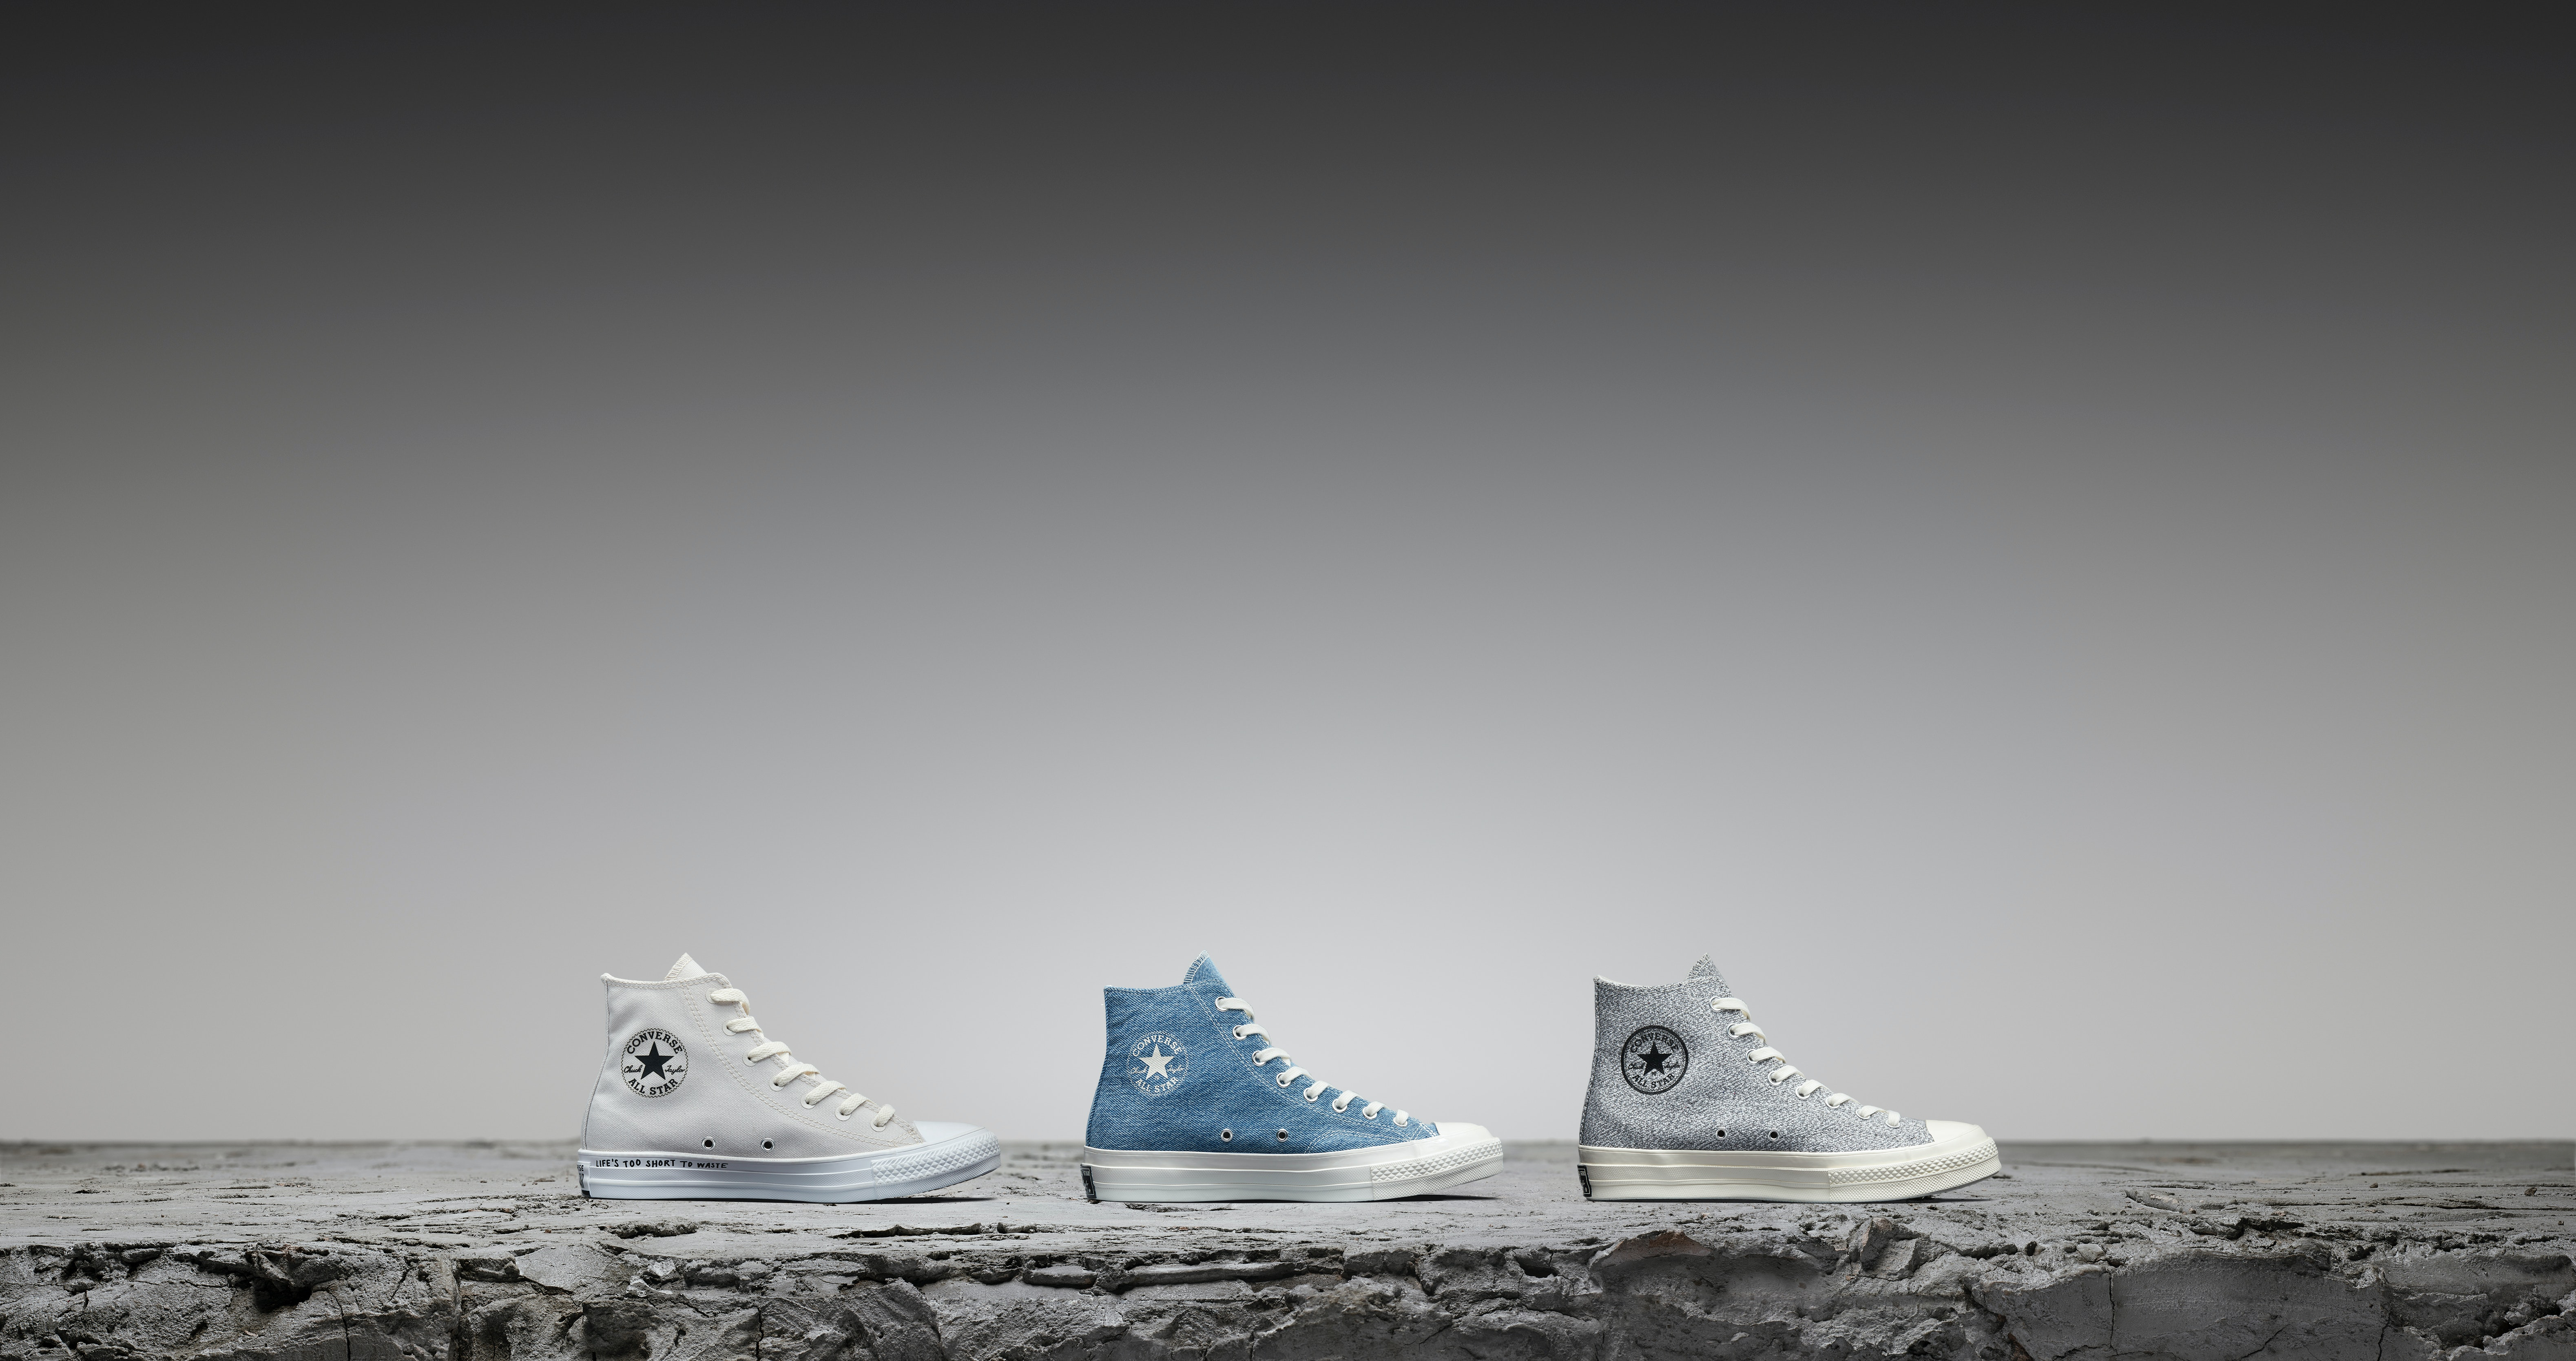 100% Calidad baratas para la venta Calidad superior Converse's New Renew Sneakers Are Made Out Of Recycled Materials ...